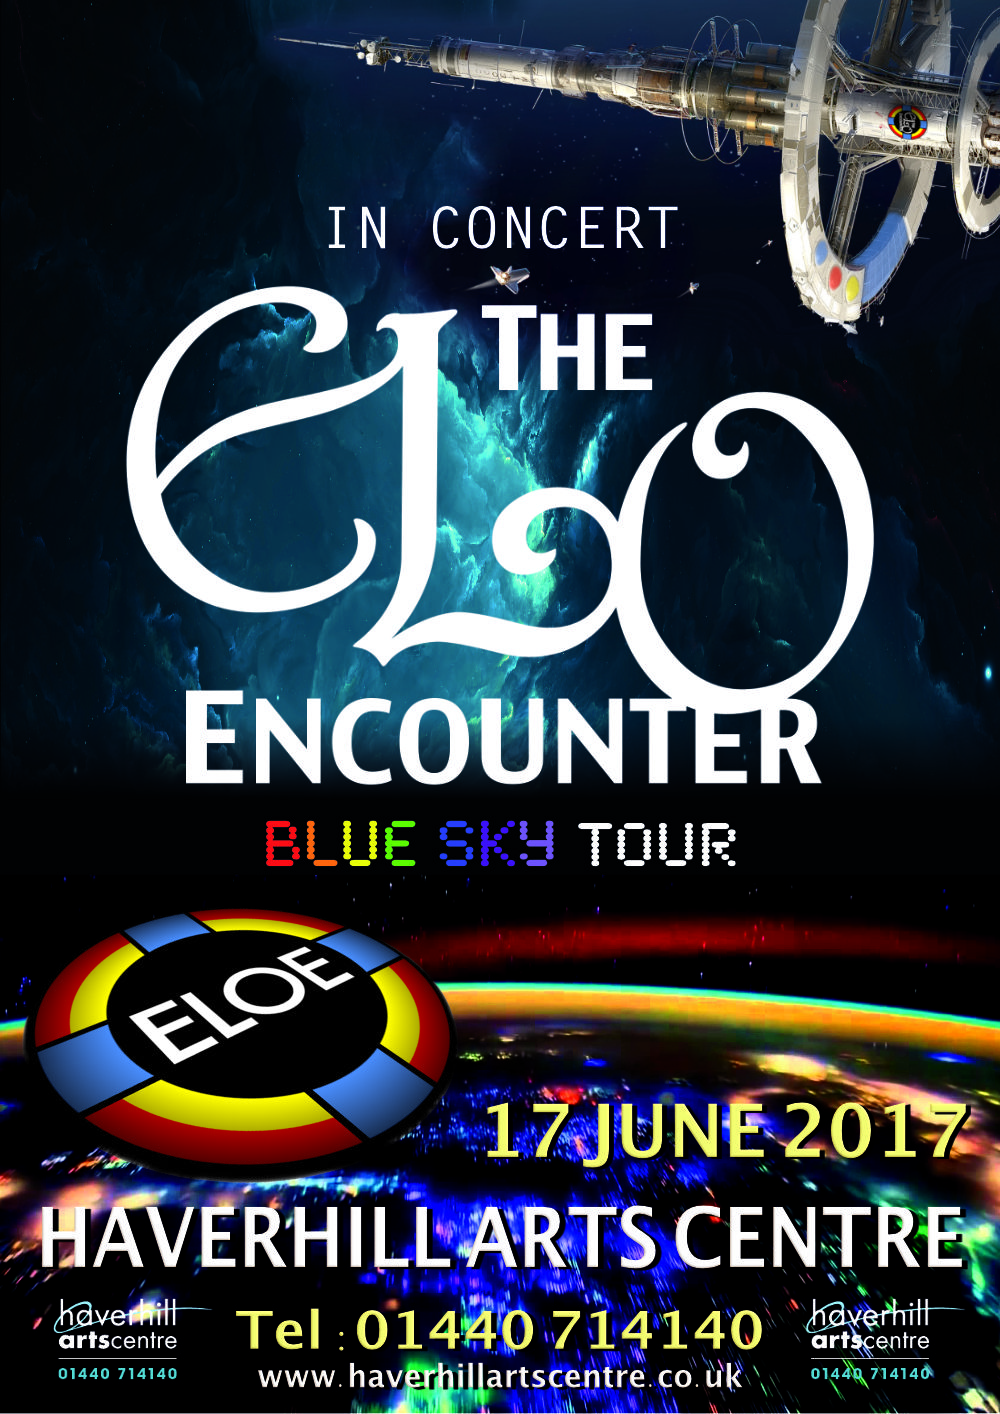 Haverhill Arts Centre - ELO Encounter Tribute Poster